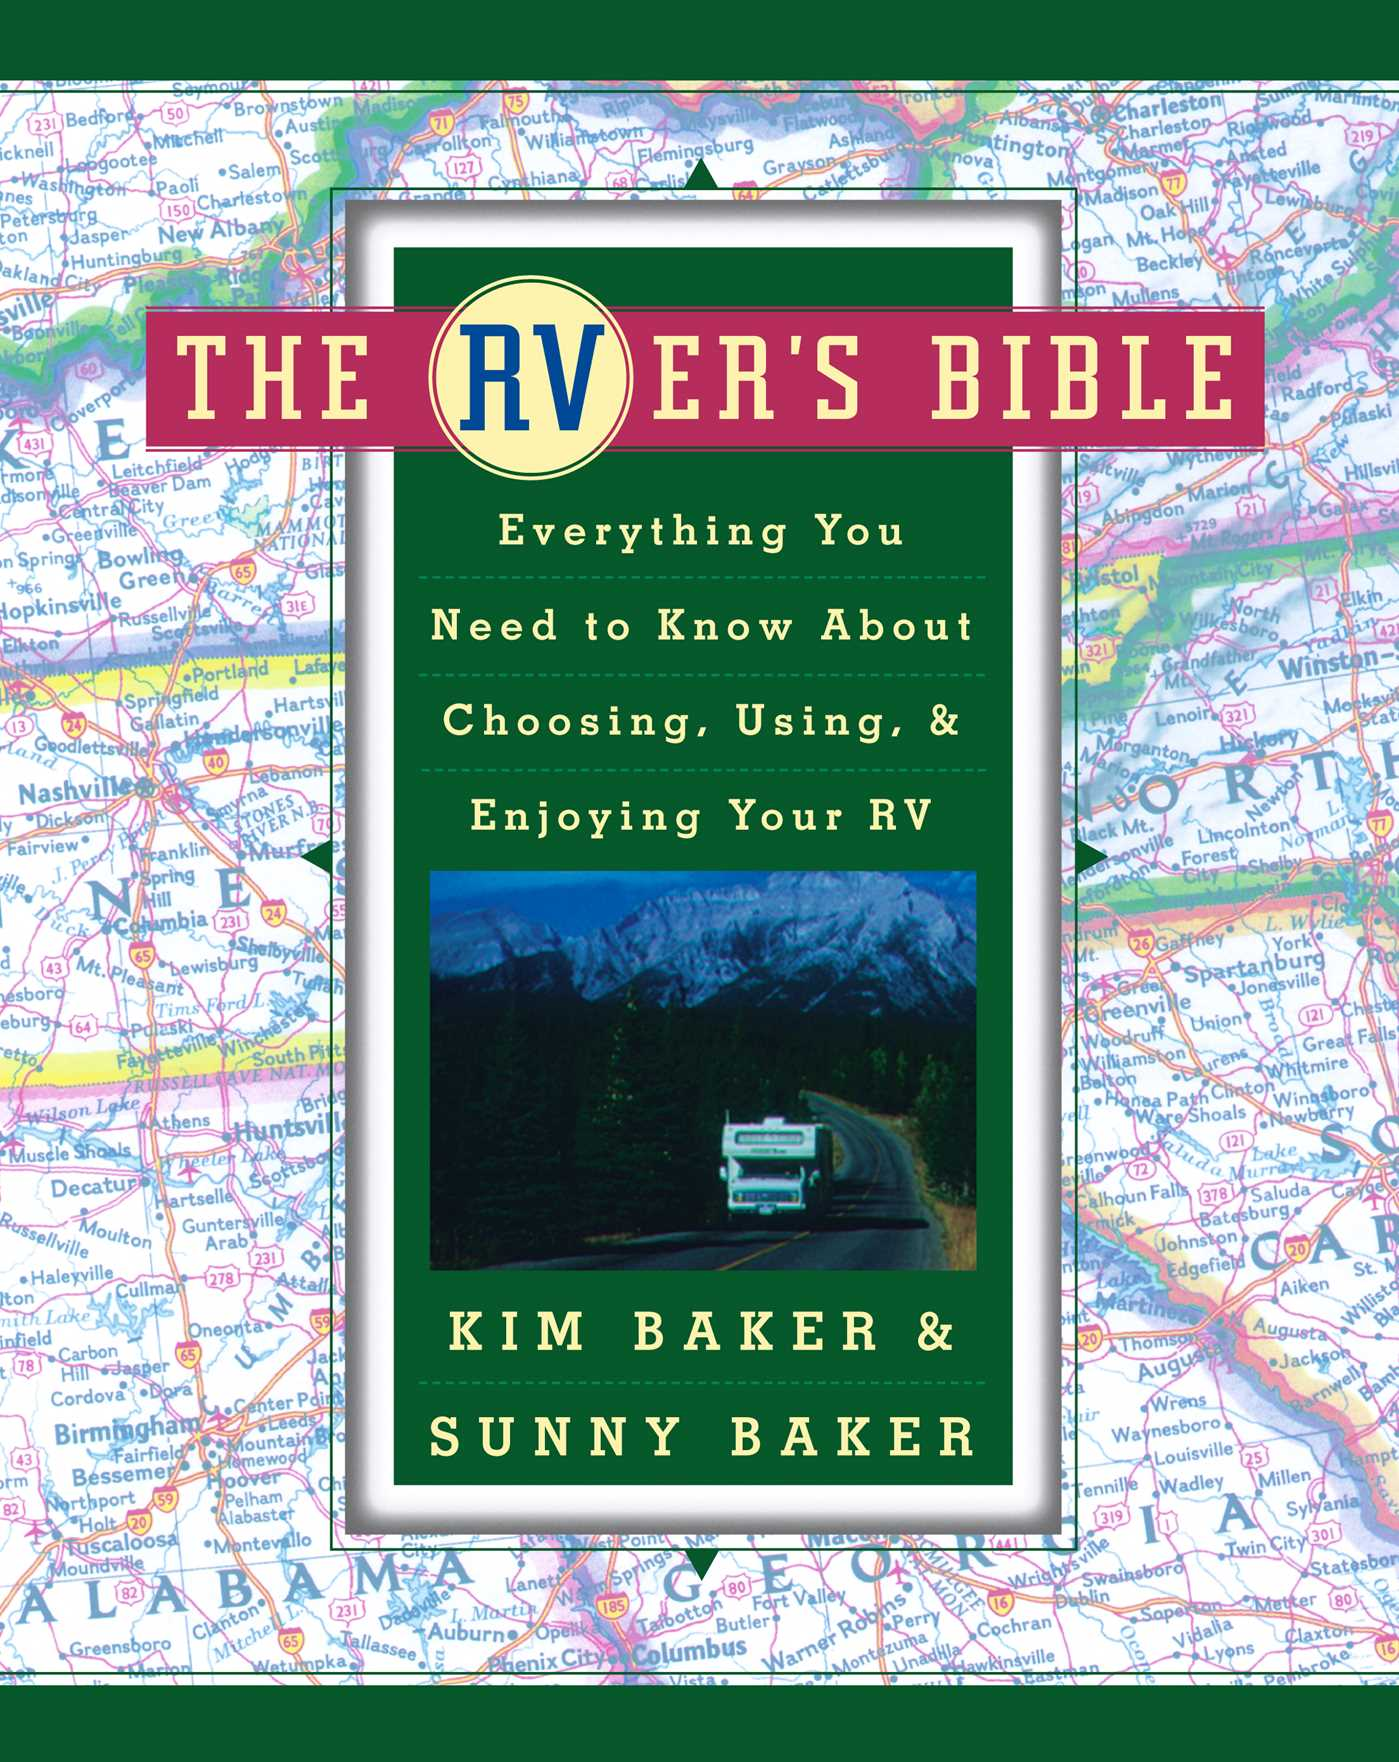 The rvers bible revised and updated 9781416552925 hr